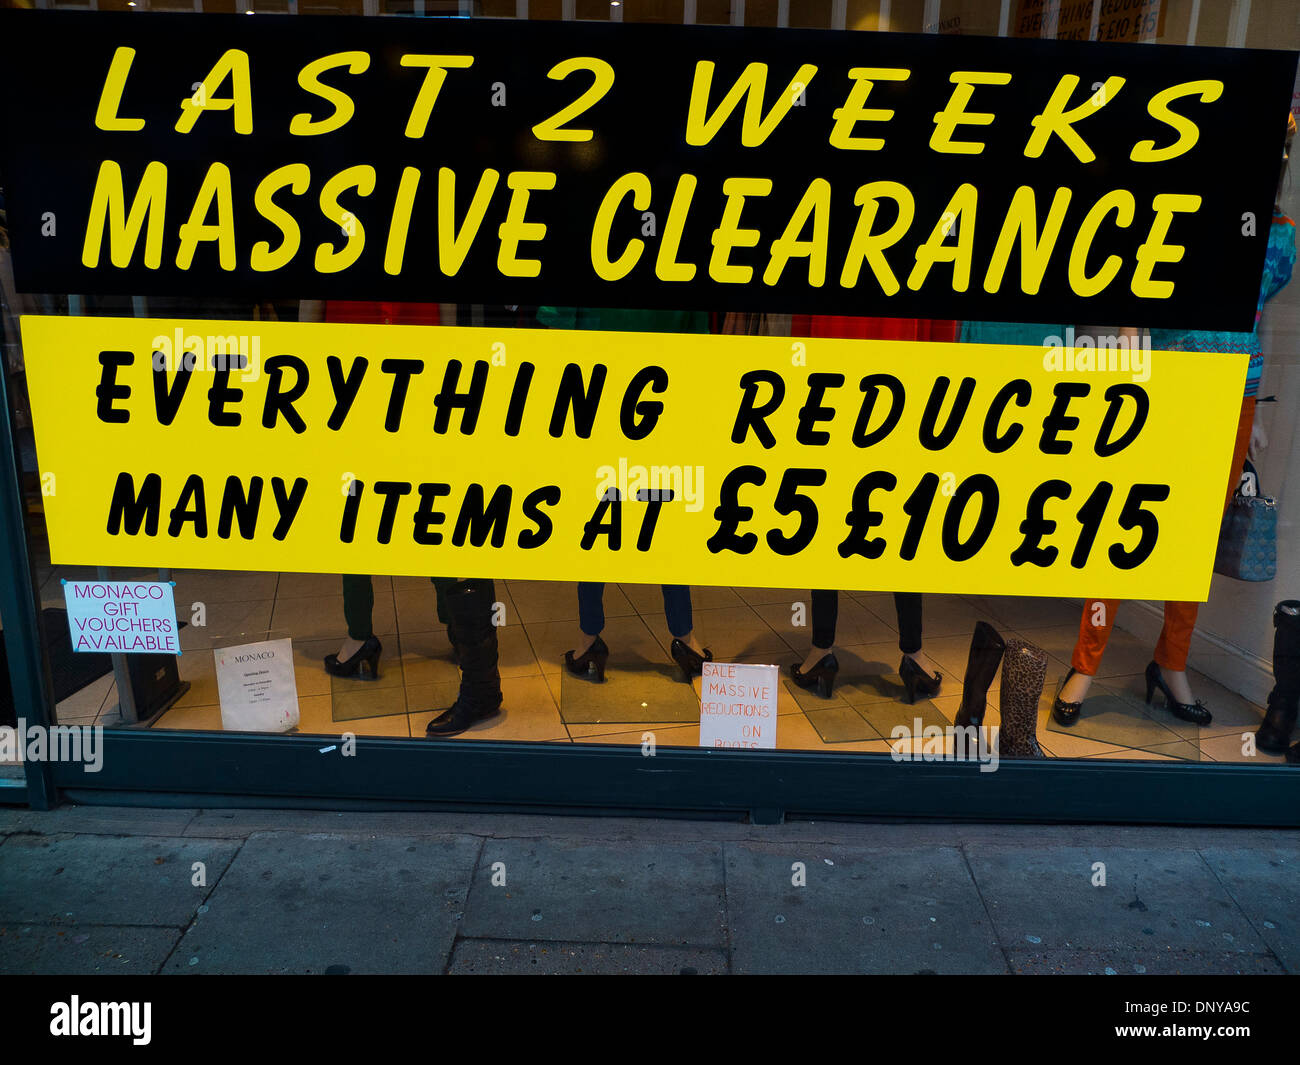 Clearance sale of fashion clothing, Leicester, UK - Stock Image